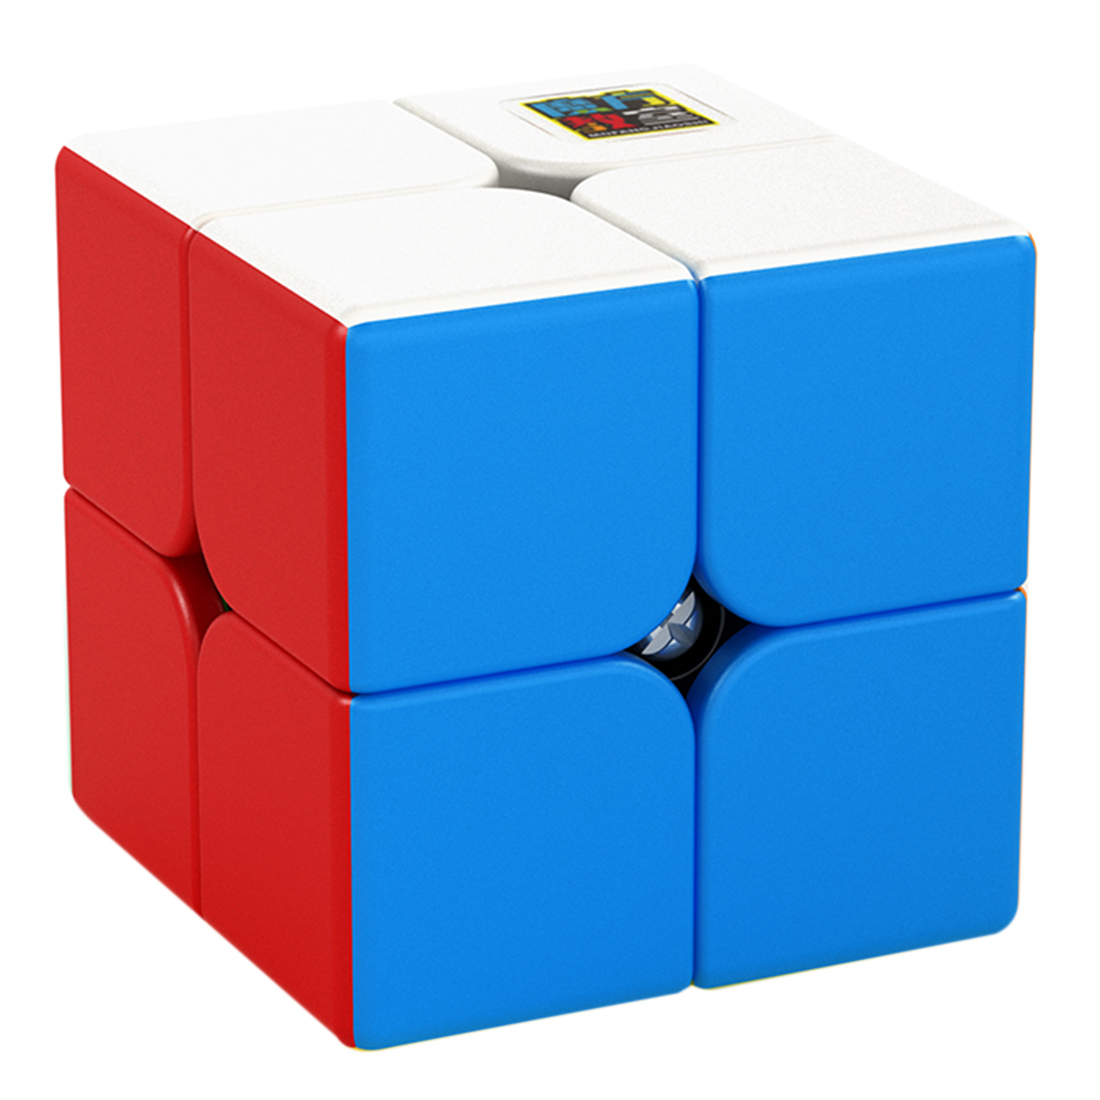 Surwish MF8861 Cubing Classroom Meilong2 2x2x2 Magic Cube 2X2 Magico Cubo Education Toys For Children Adults Gift  - Colorful